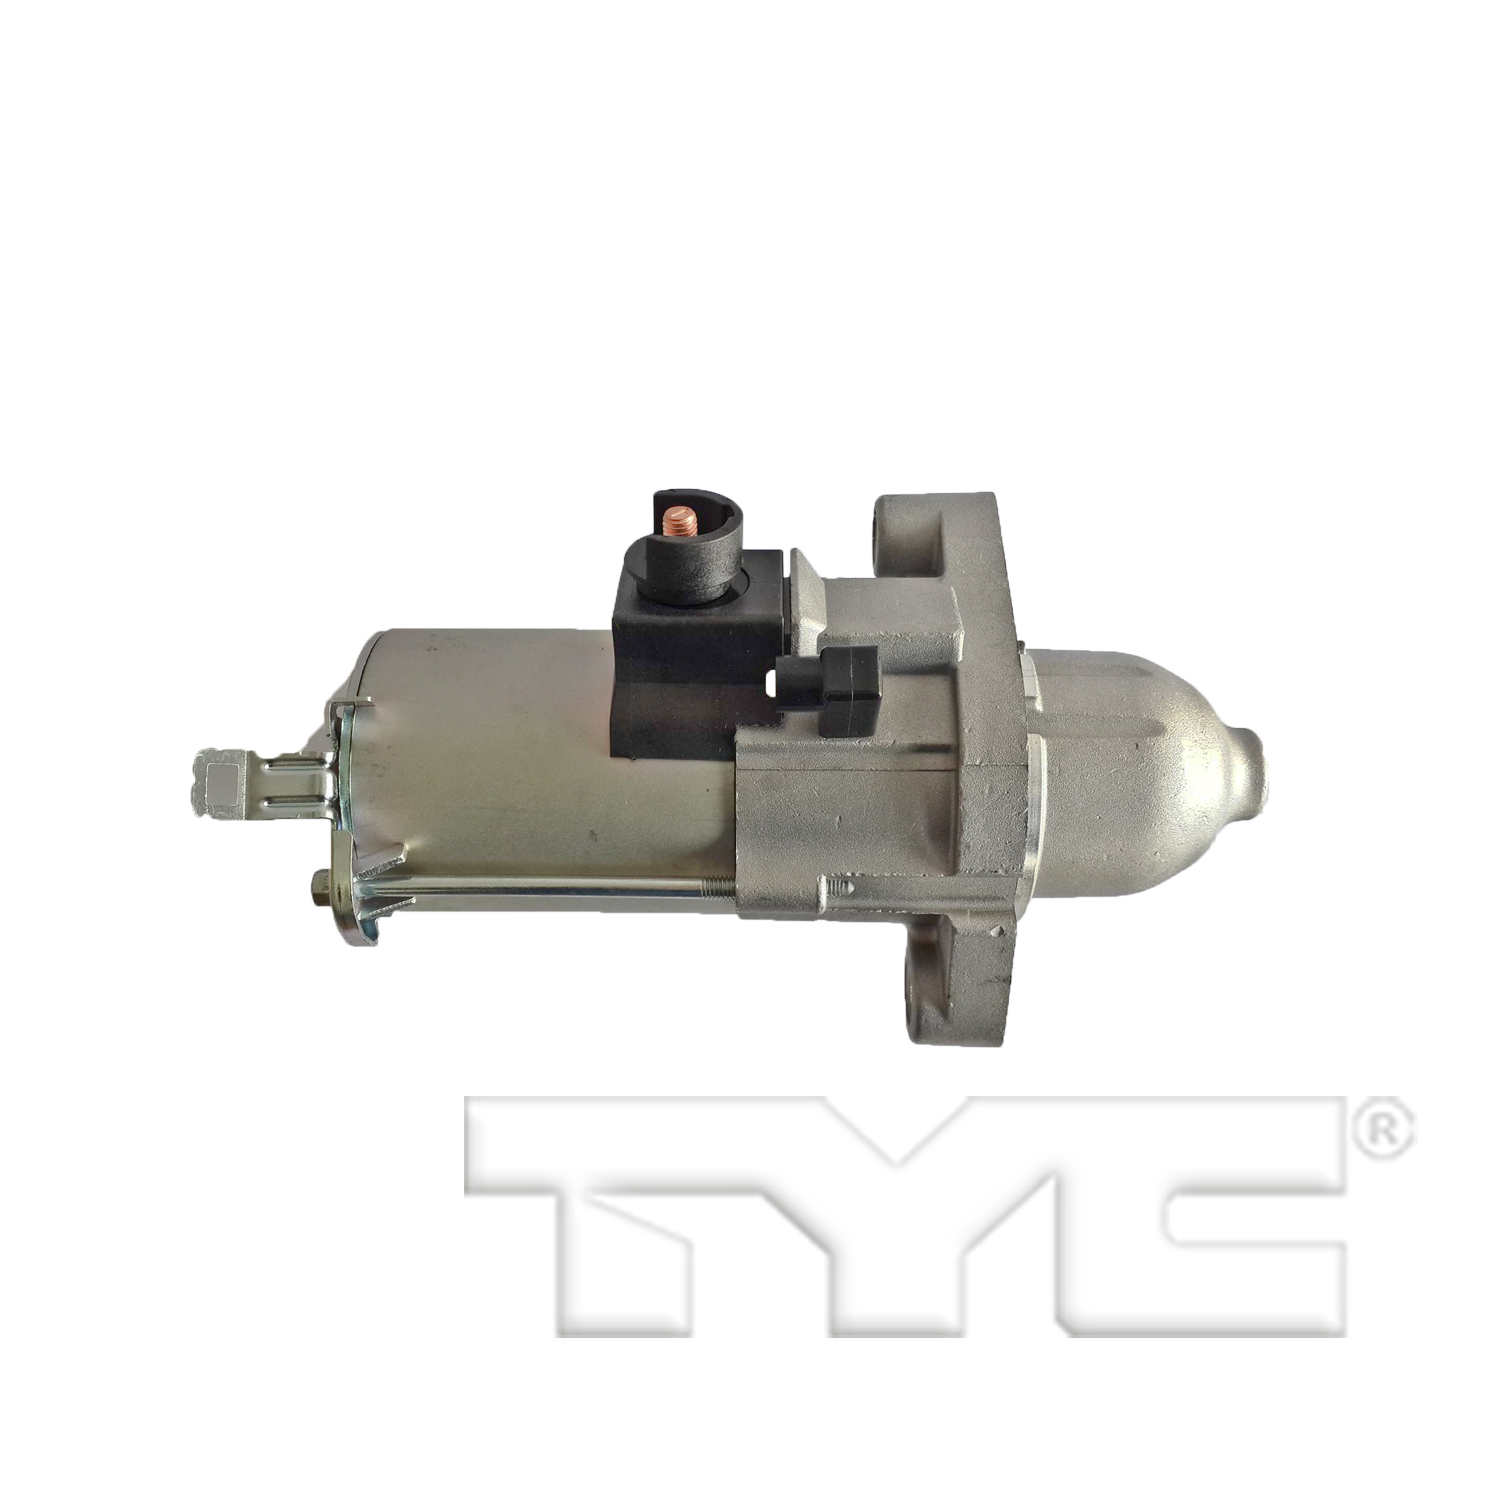 TYC # 1-17870 Starter Replaces OE # 31200-RAA-A51RM